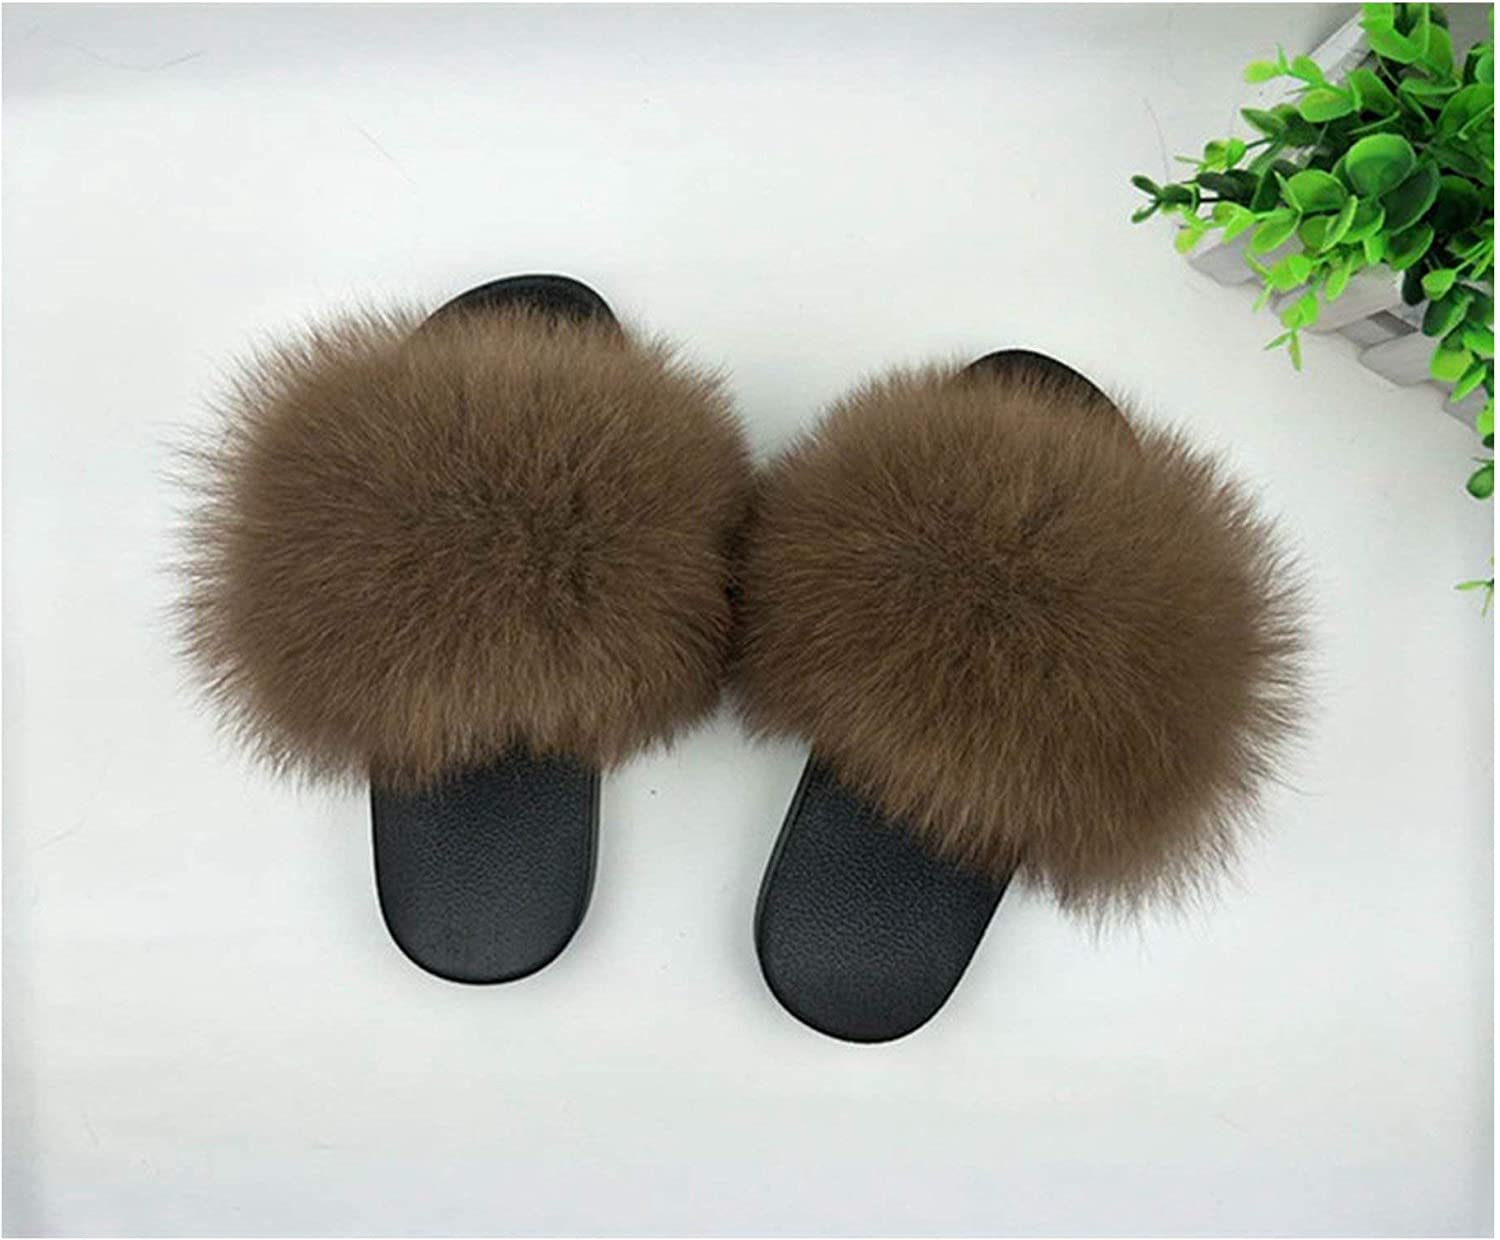 Leifun Fur Slippers Women Fox Home Fluffy Sliders with Feathers Furry Summer Flats Sweet shoes